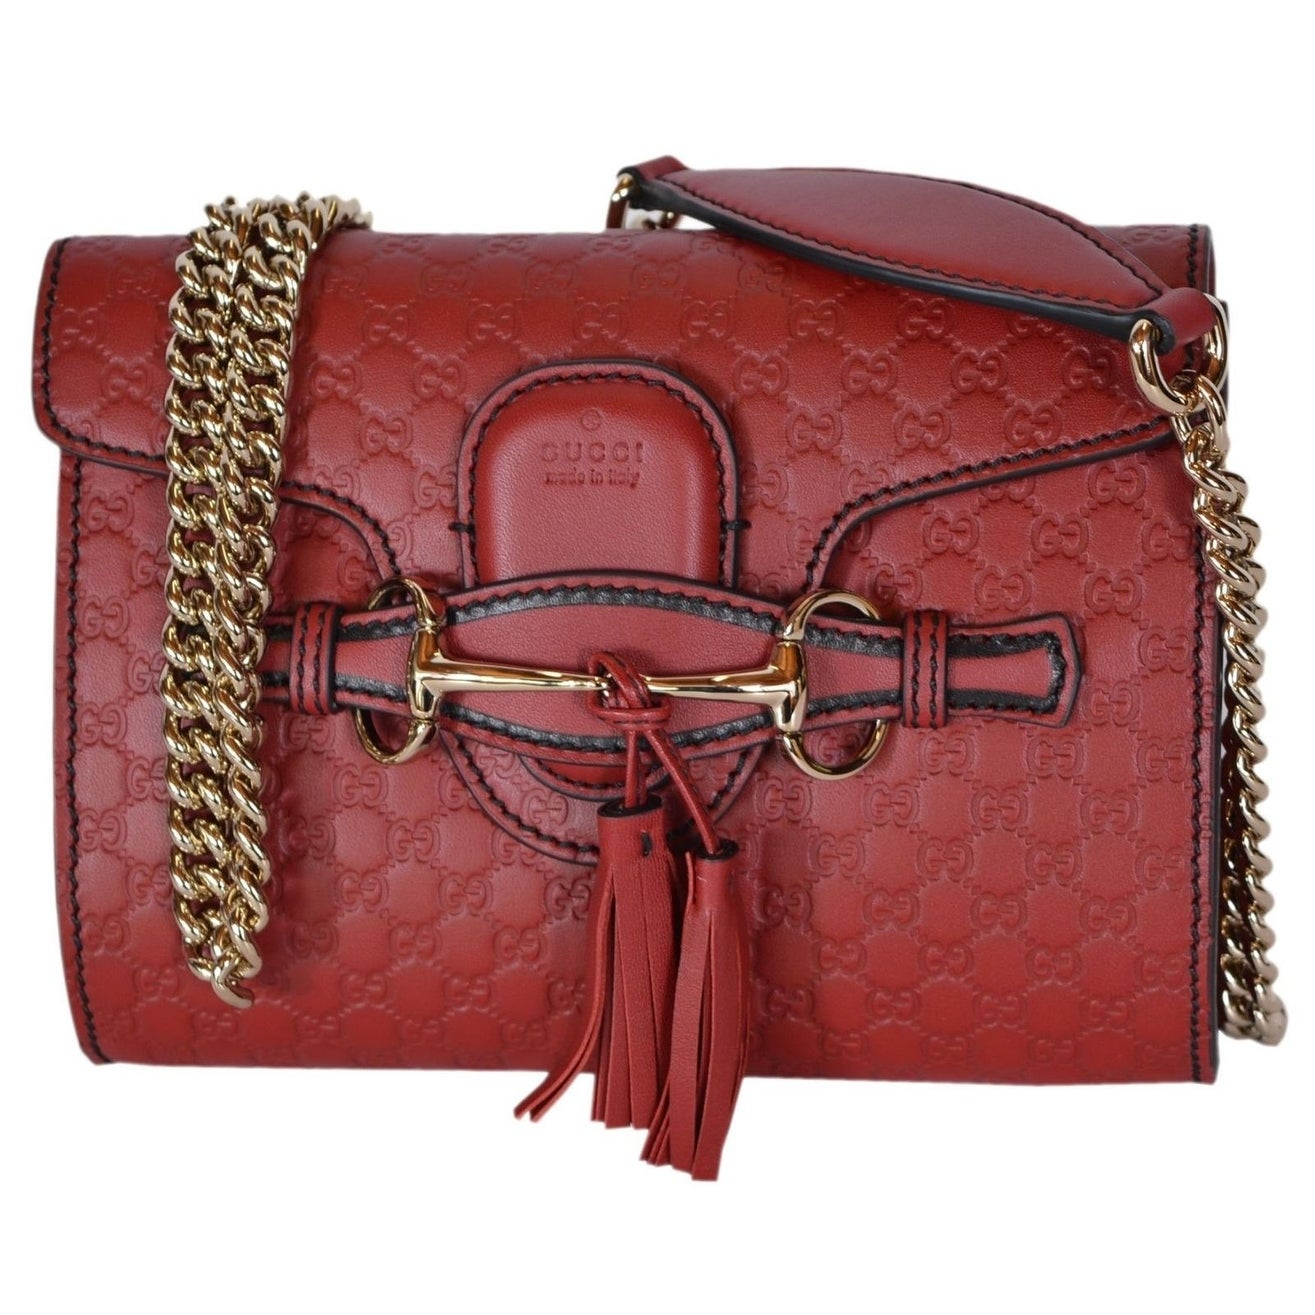 0db8c2d998b0a Gucci 449636 Red Micro GG Guccissima Leather MINI Emily Crossbody Purse